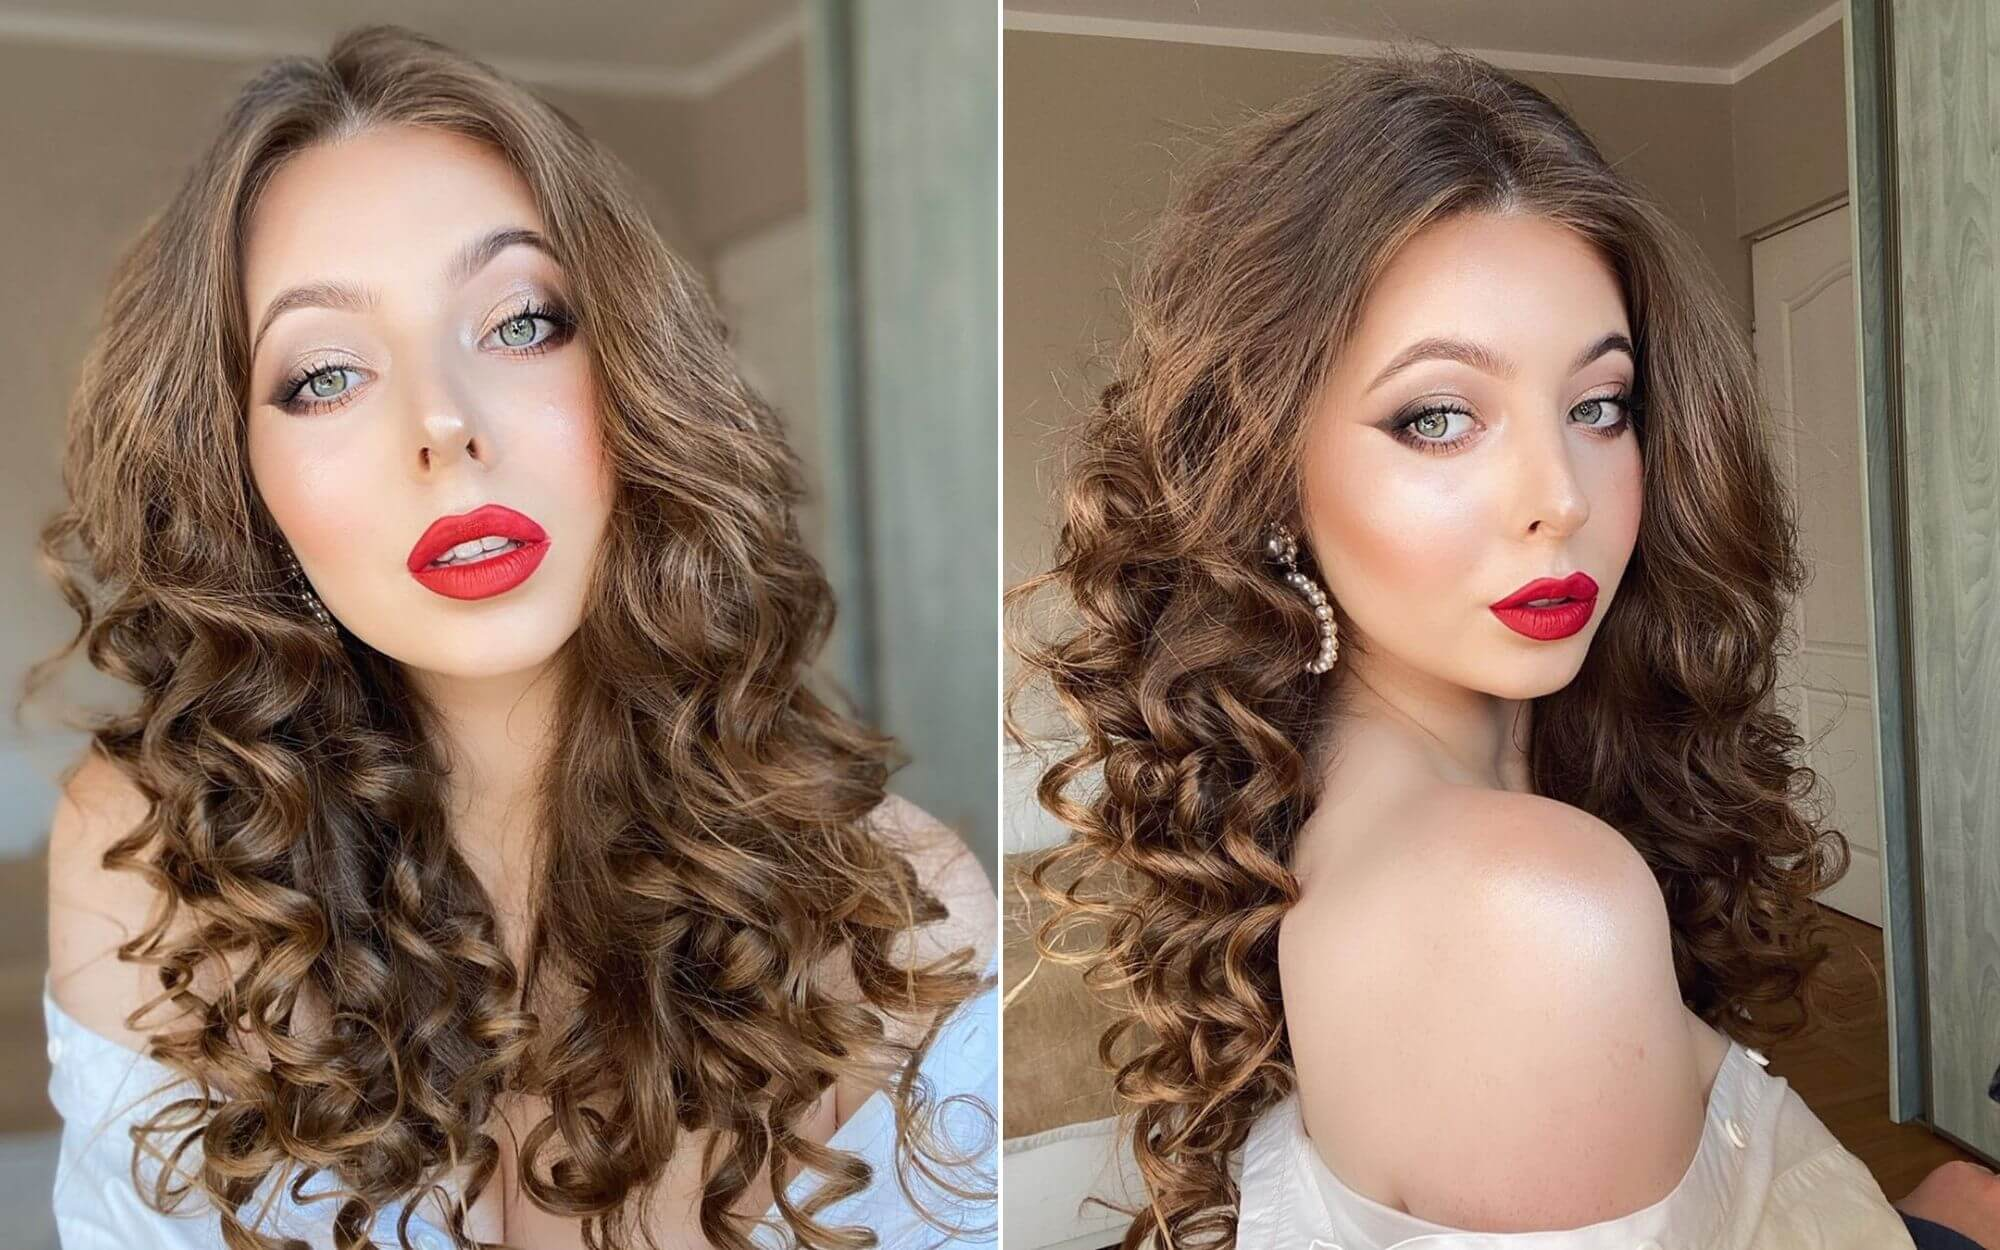 Curled Hairstyle for Girls with Long Hair